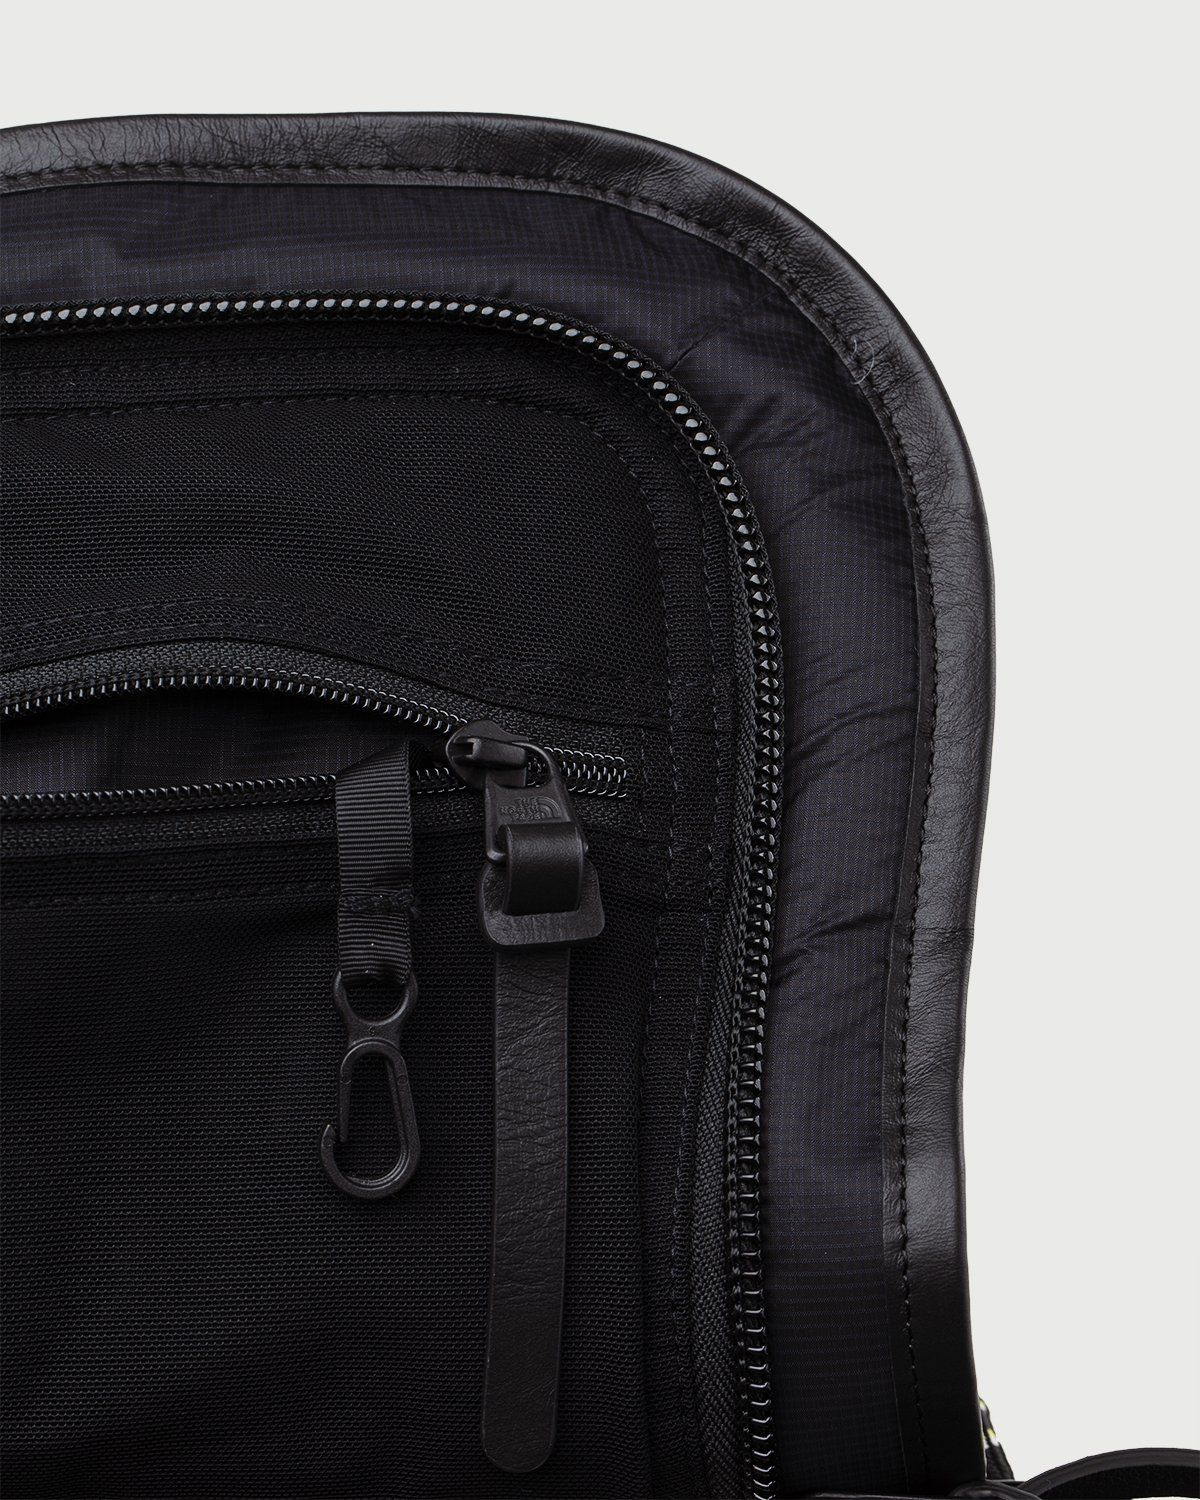 The North Face Black Series - Base Camp Duffel Black - Image 6